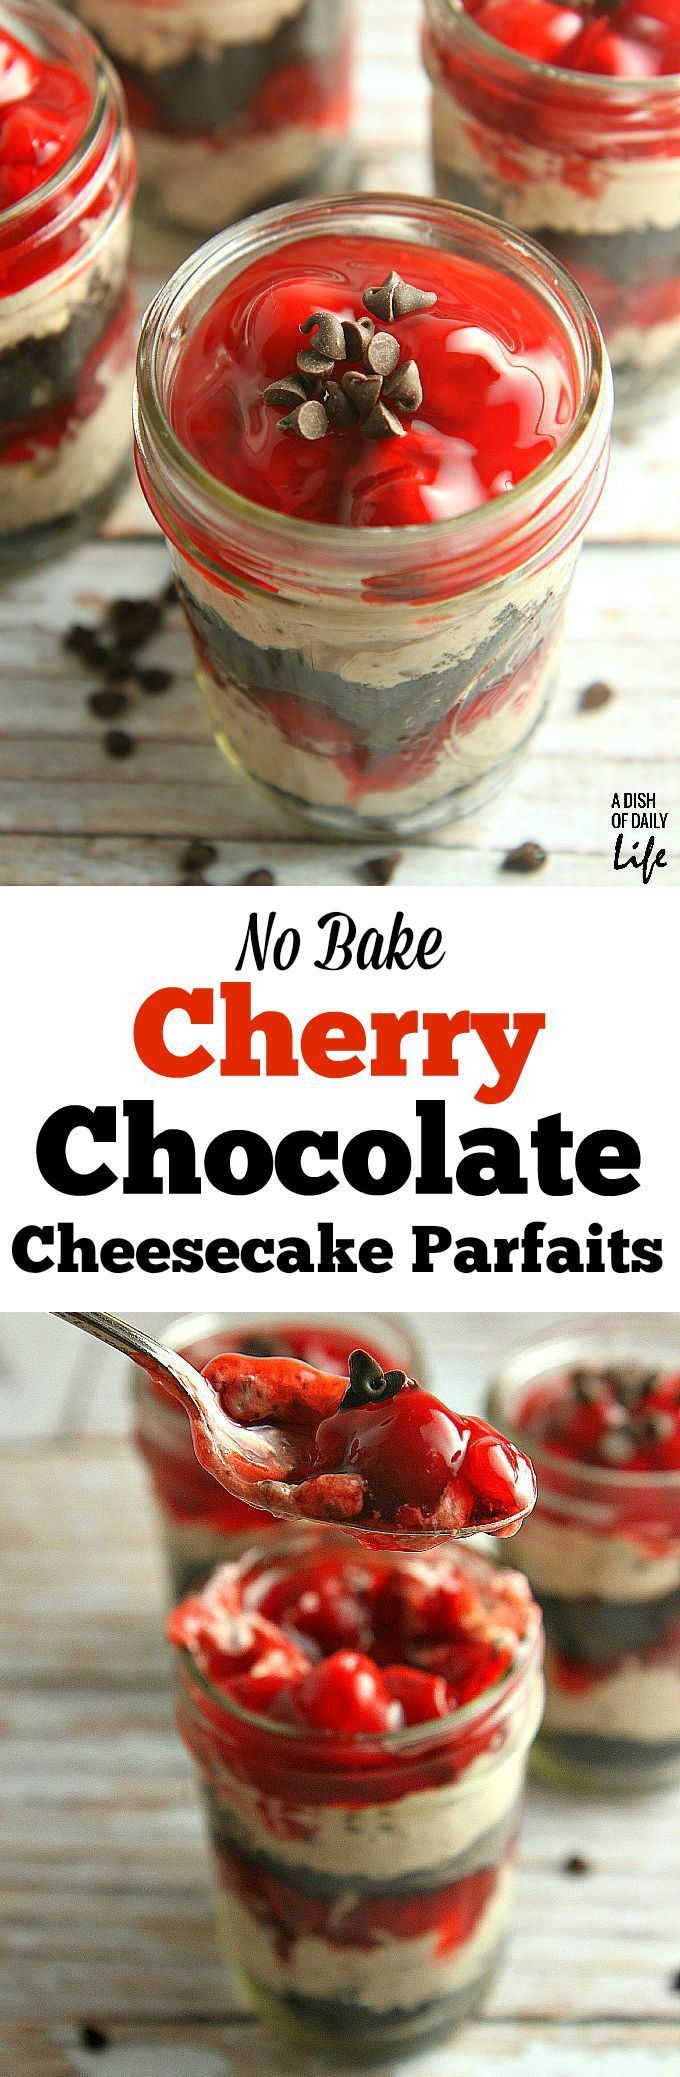 No need to heat the kitchen up! These No Bake Cherry Chocolate Cheesecake Parfaits are the perfect dessert recipe for casual get togethers, tailgating, kids' parties or even camping! They're easy to make ahead and transport in their individual mason jars too. #spon #NestleTollHouse #NoBake